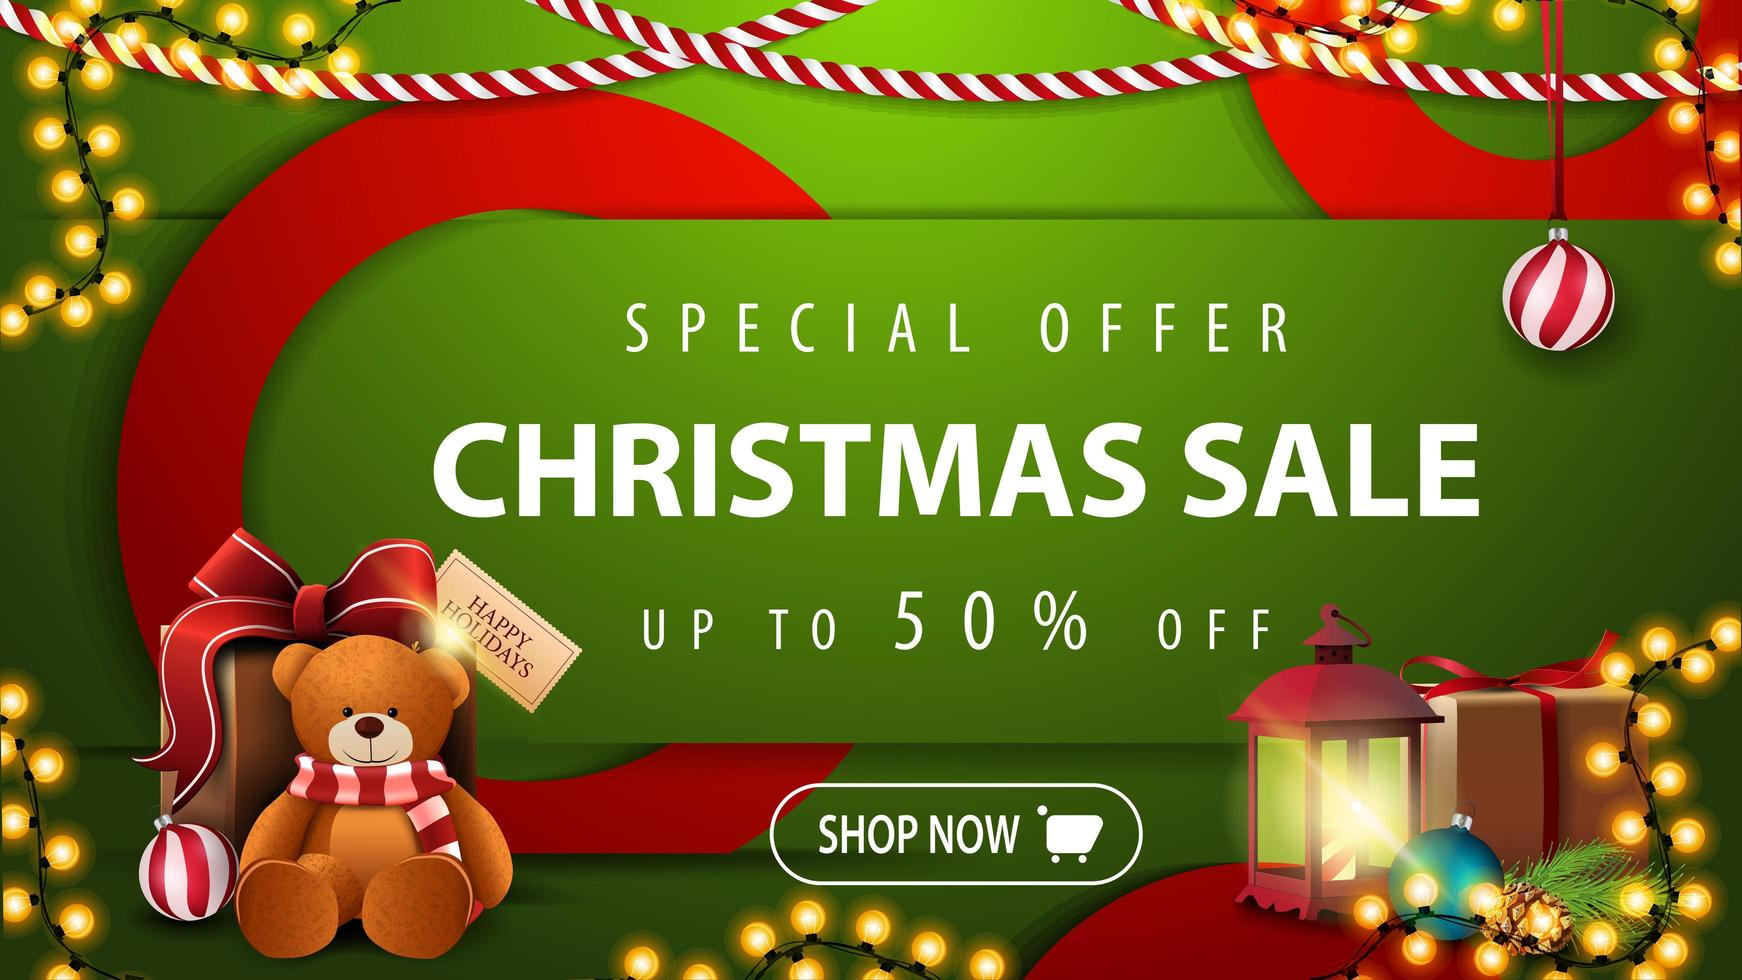 Special offer, Christmas sale, up to 50 off, green bright horizontal modern web banner with button, large red circles, antique lamp and present with Teddy bear vector